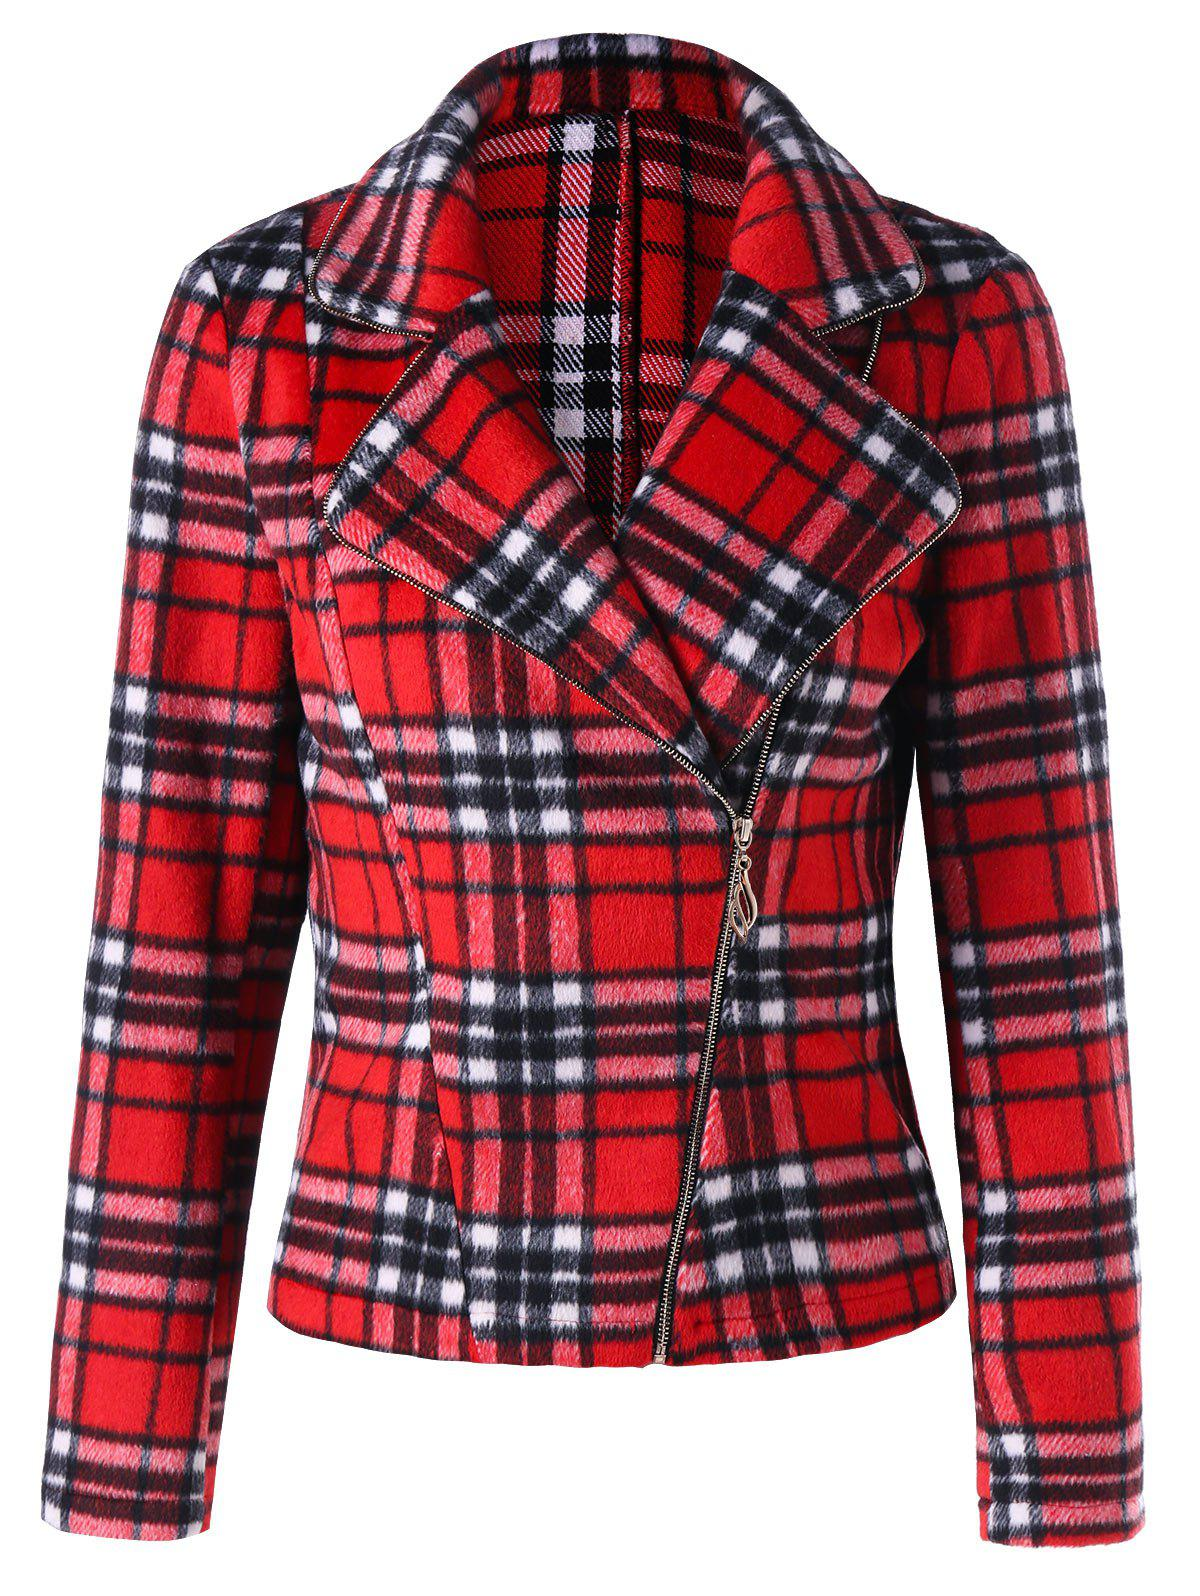 Store Lapel Skew Zipper Plaid Jacket